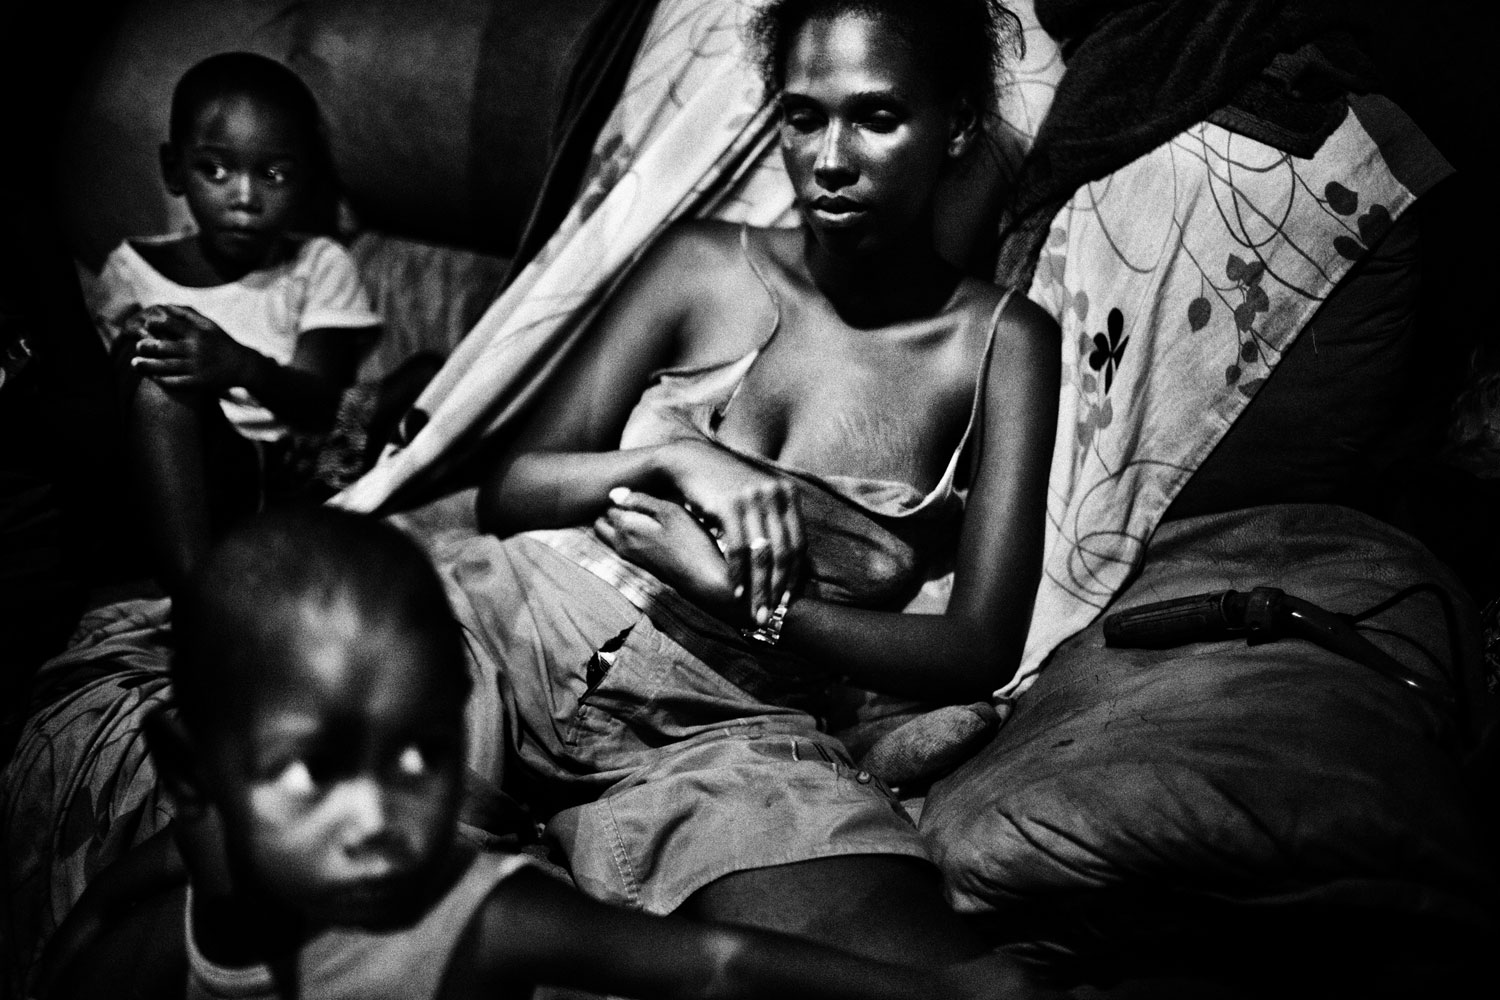 Sebastian Liste, The Brazilian Far WestSalvador de Bahia, Brazil. Melanie, 22, with her two sons in a small shack in an abandoned chocolate factory. In spite of the extreme conditions, this factory in ruins has become a home for her family.